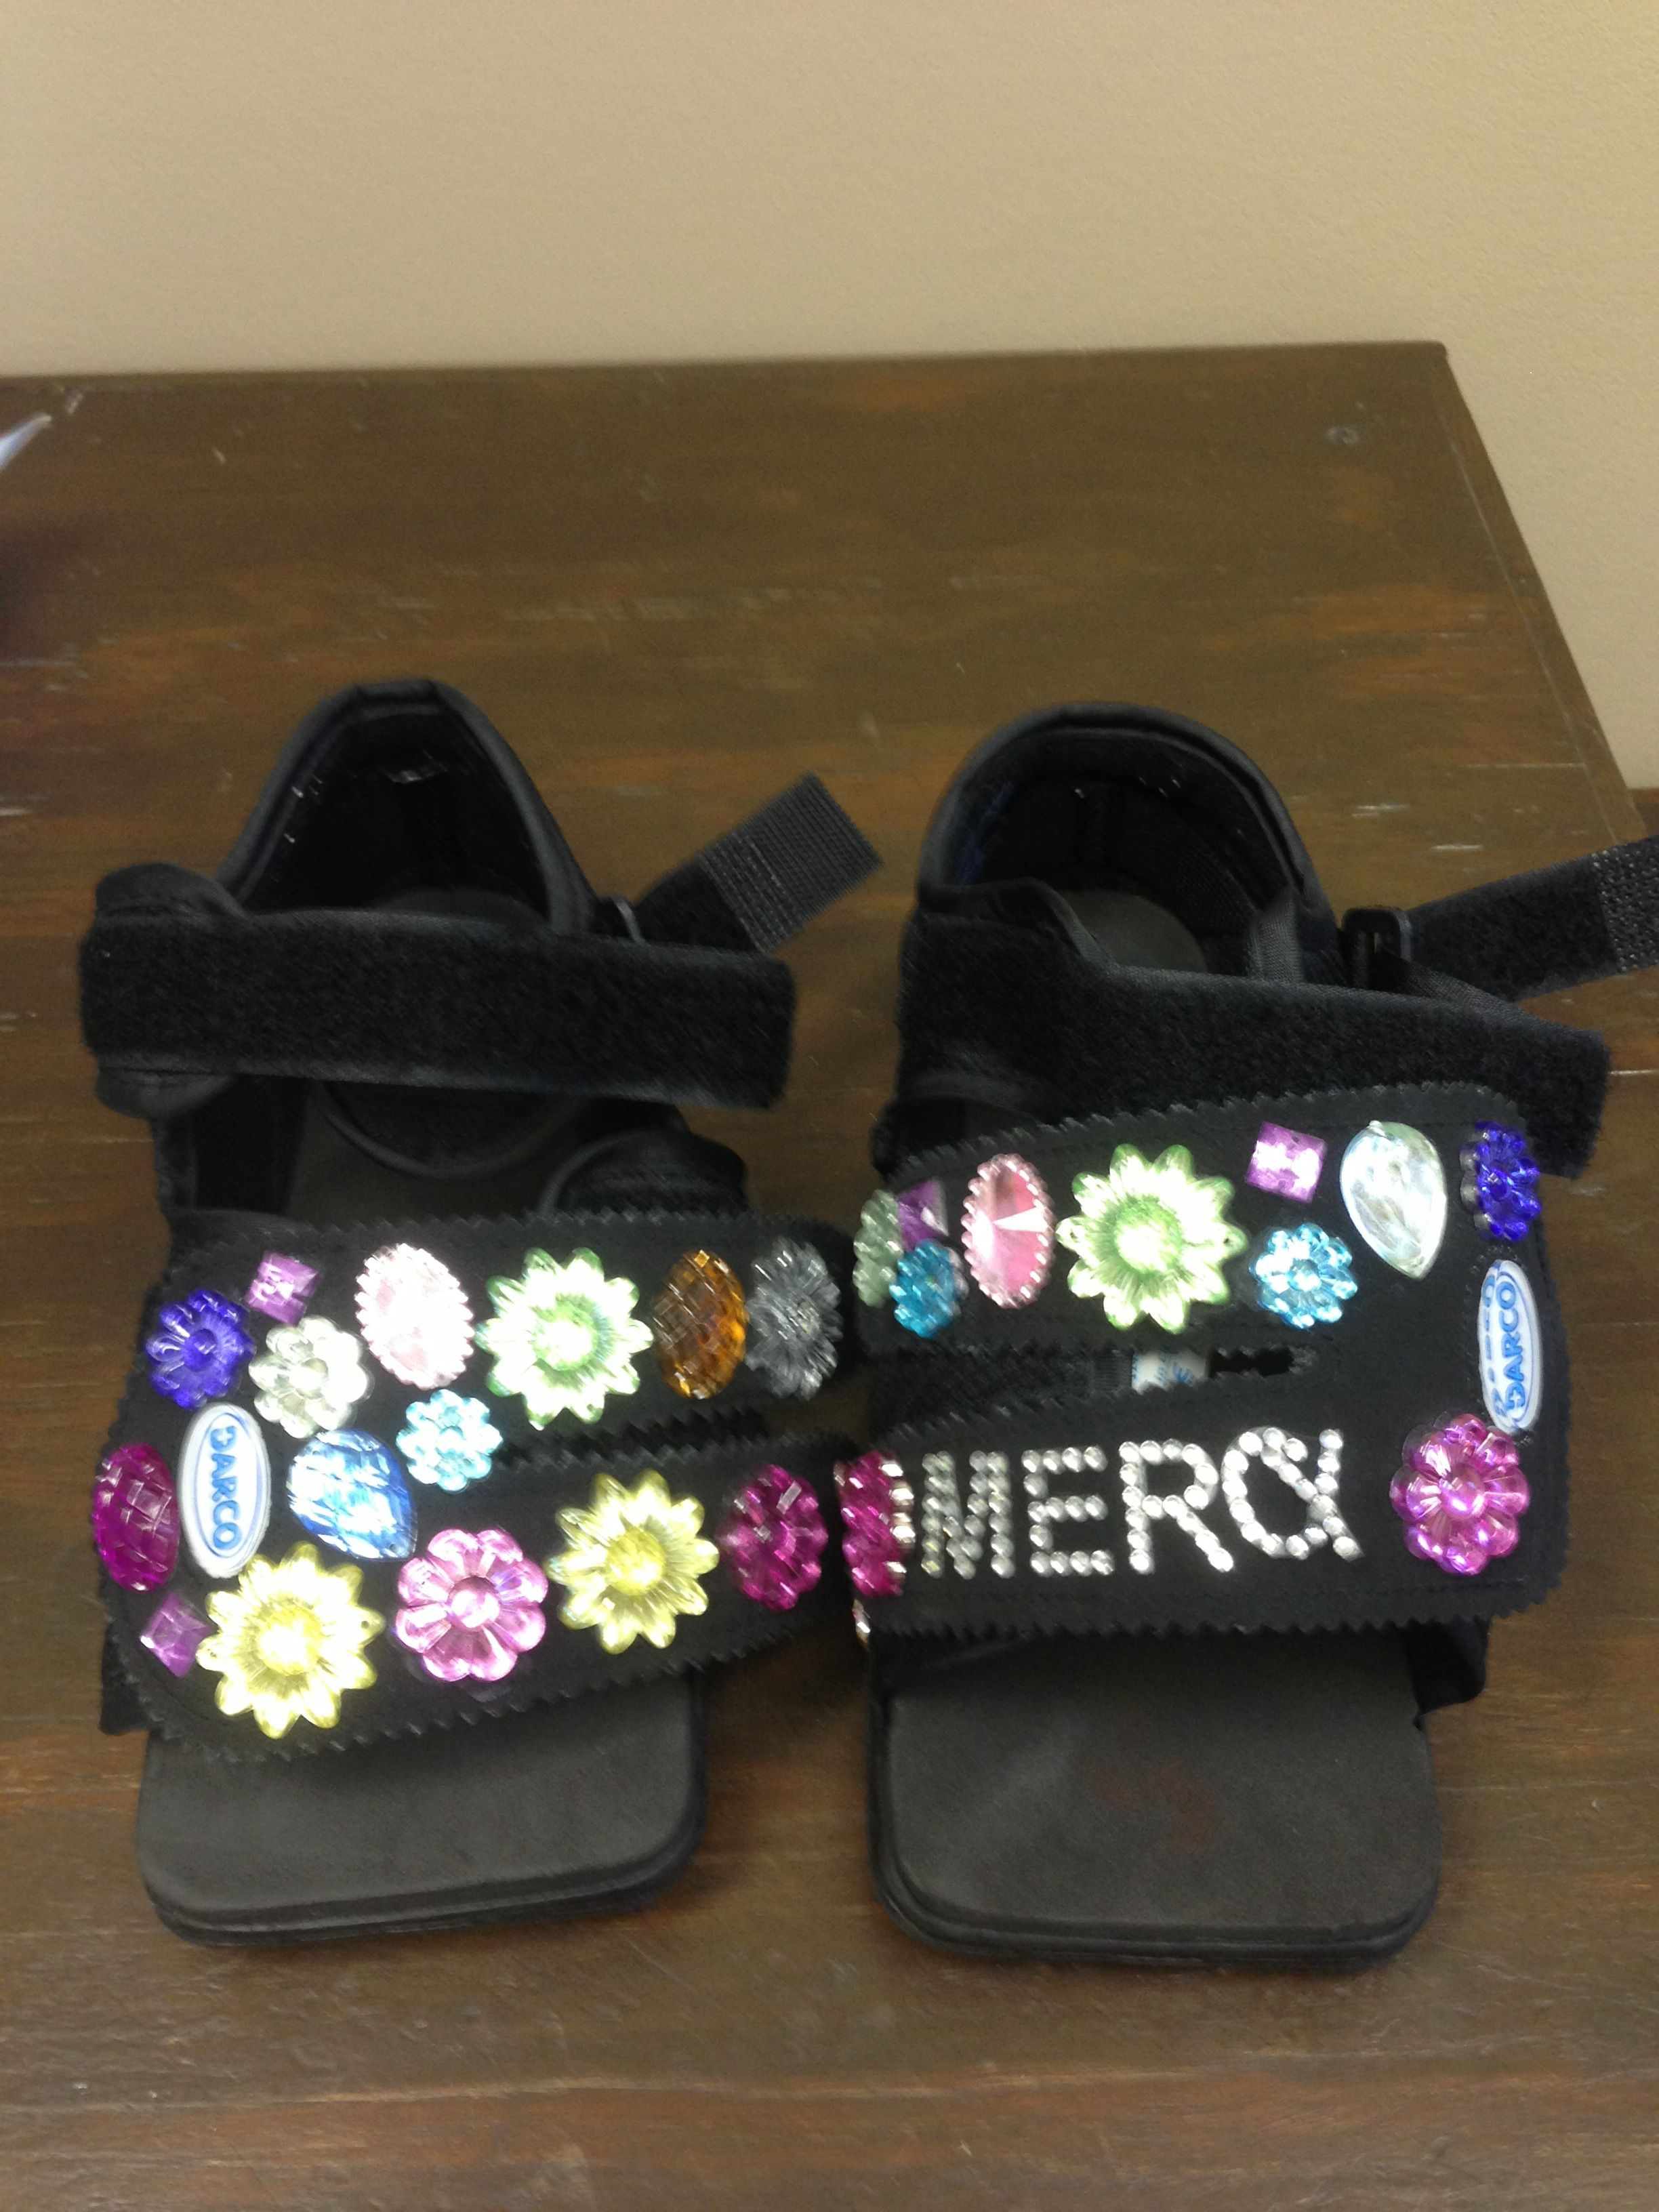 Bedazzled Surgical shoe after Houston neuroma surgery